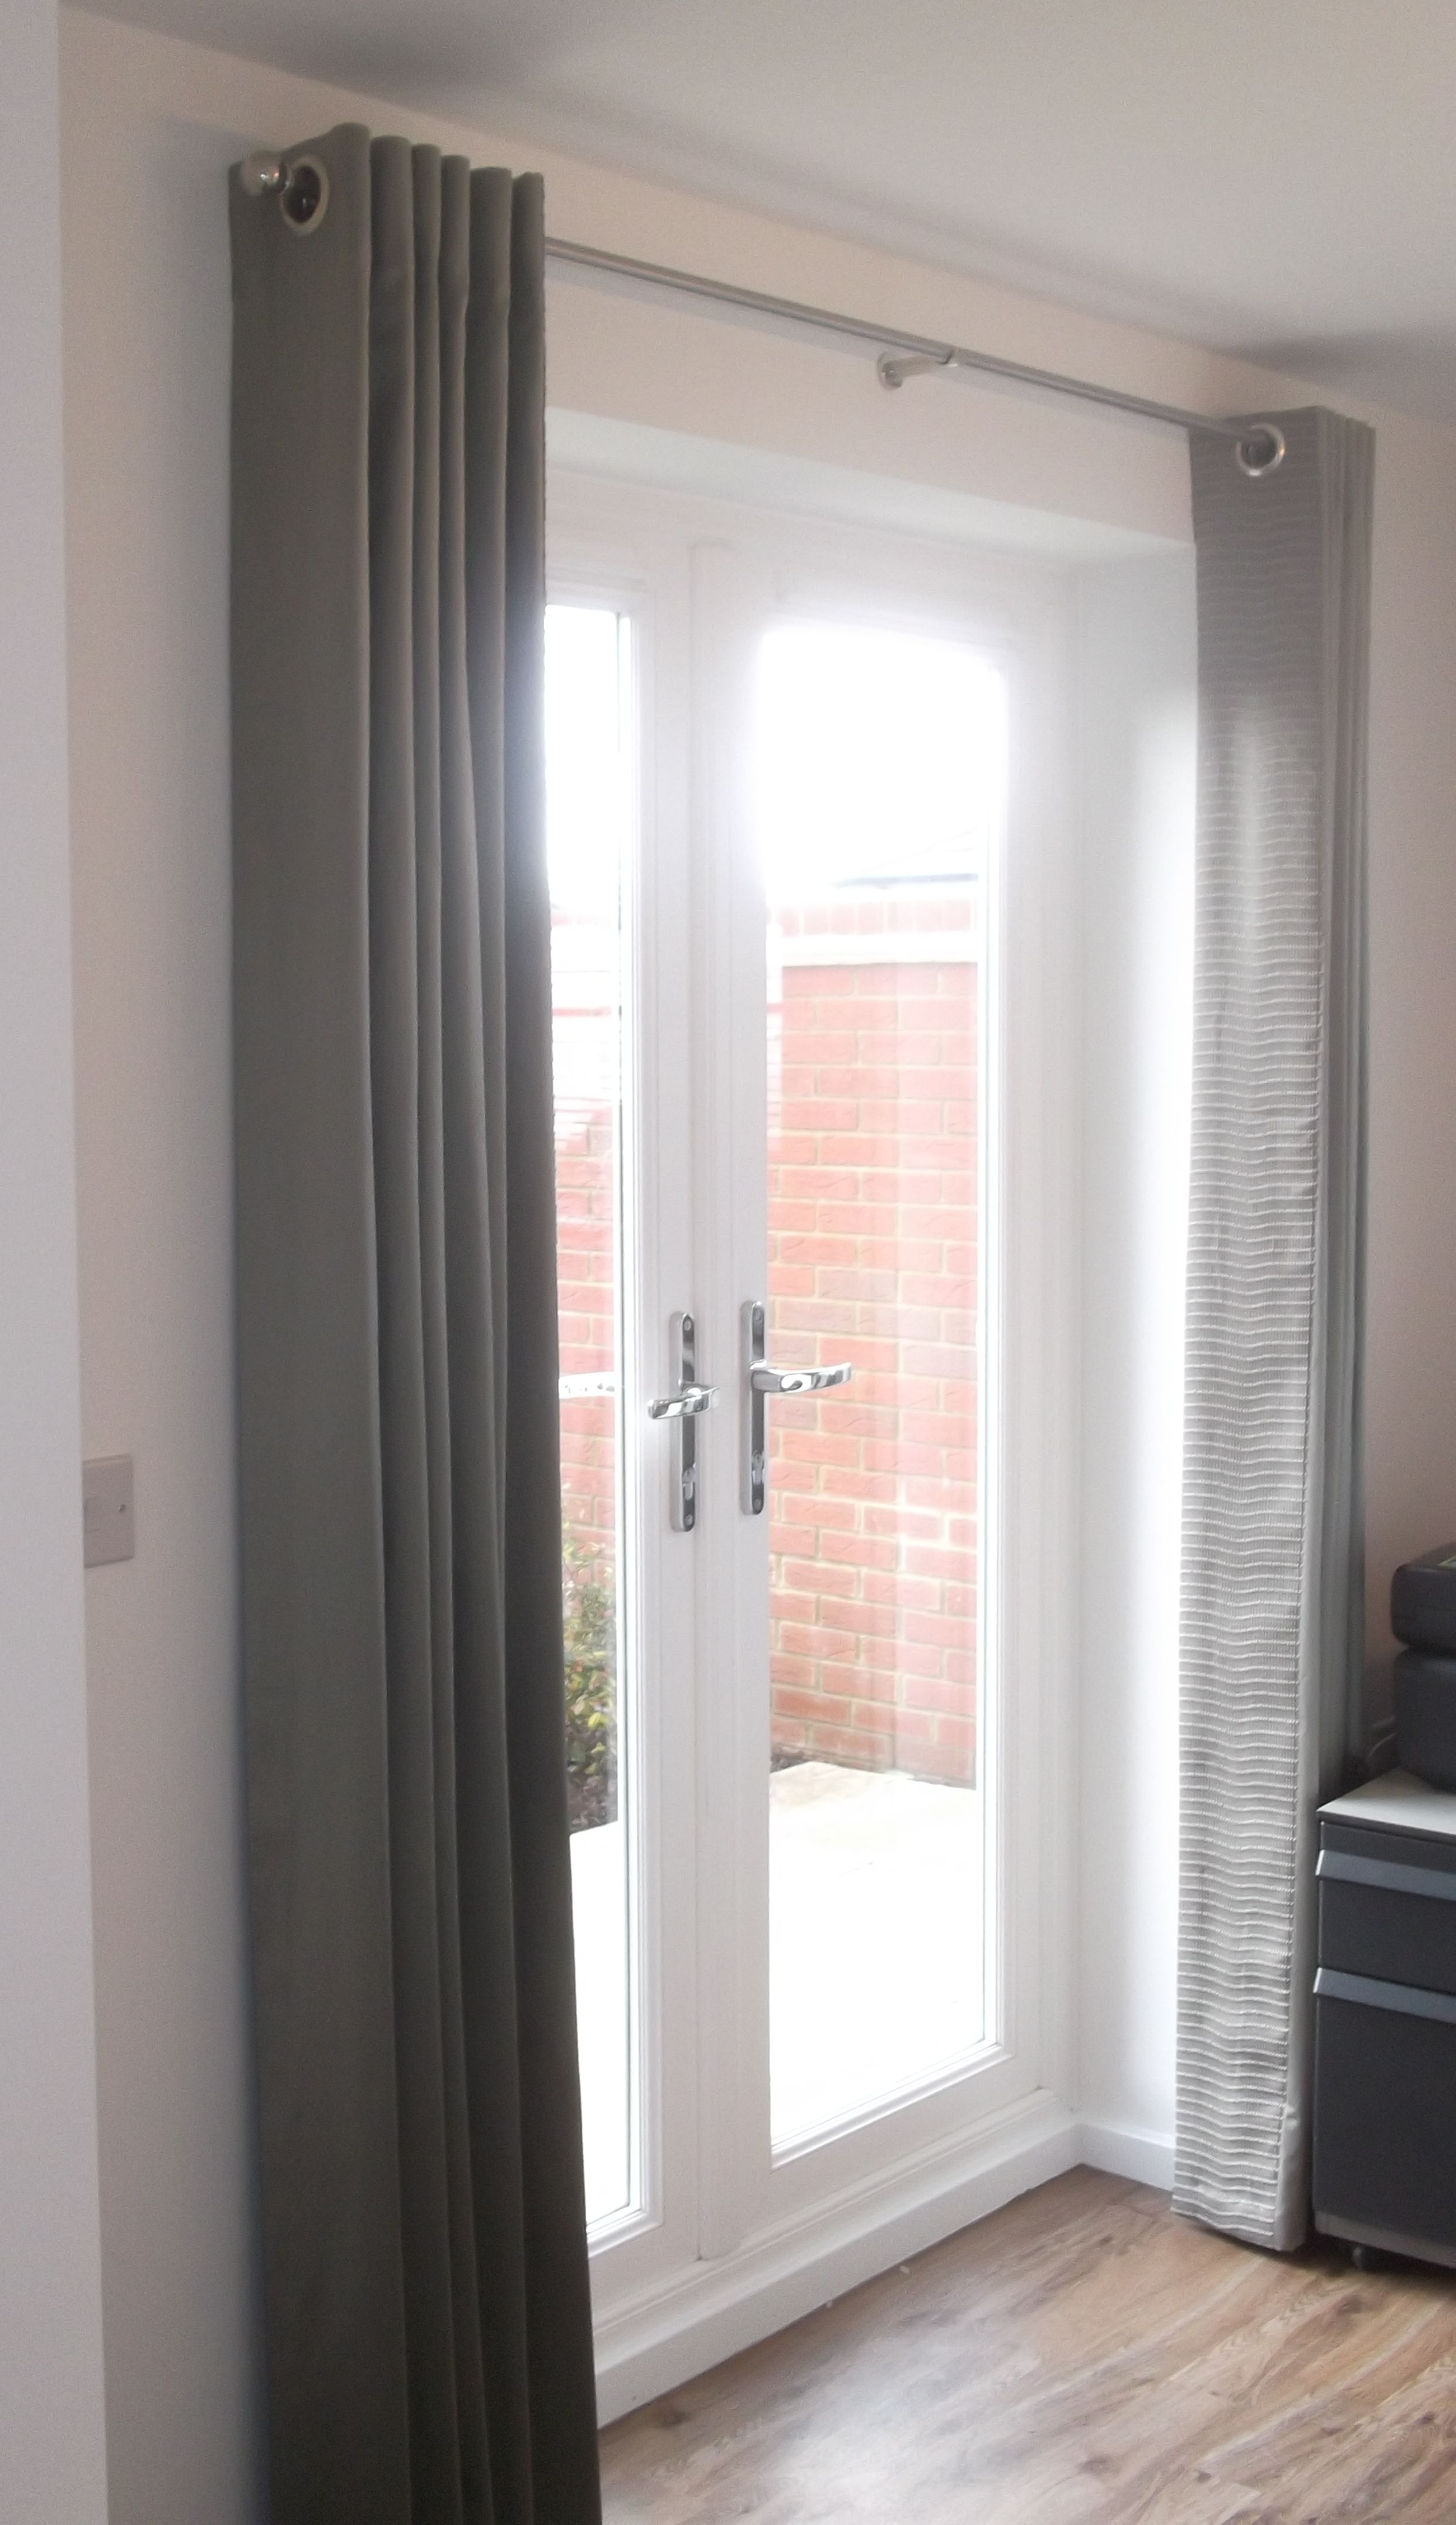 Sliding Door and Curtains More French Door Window Covers in